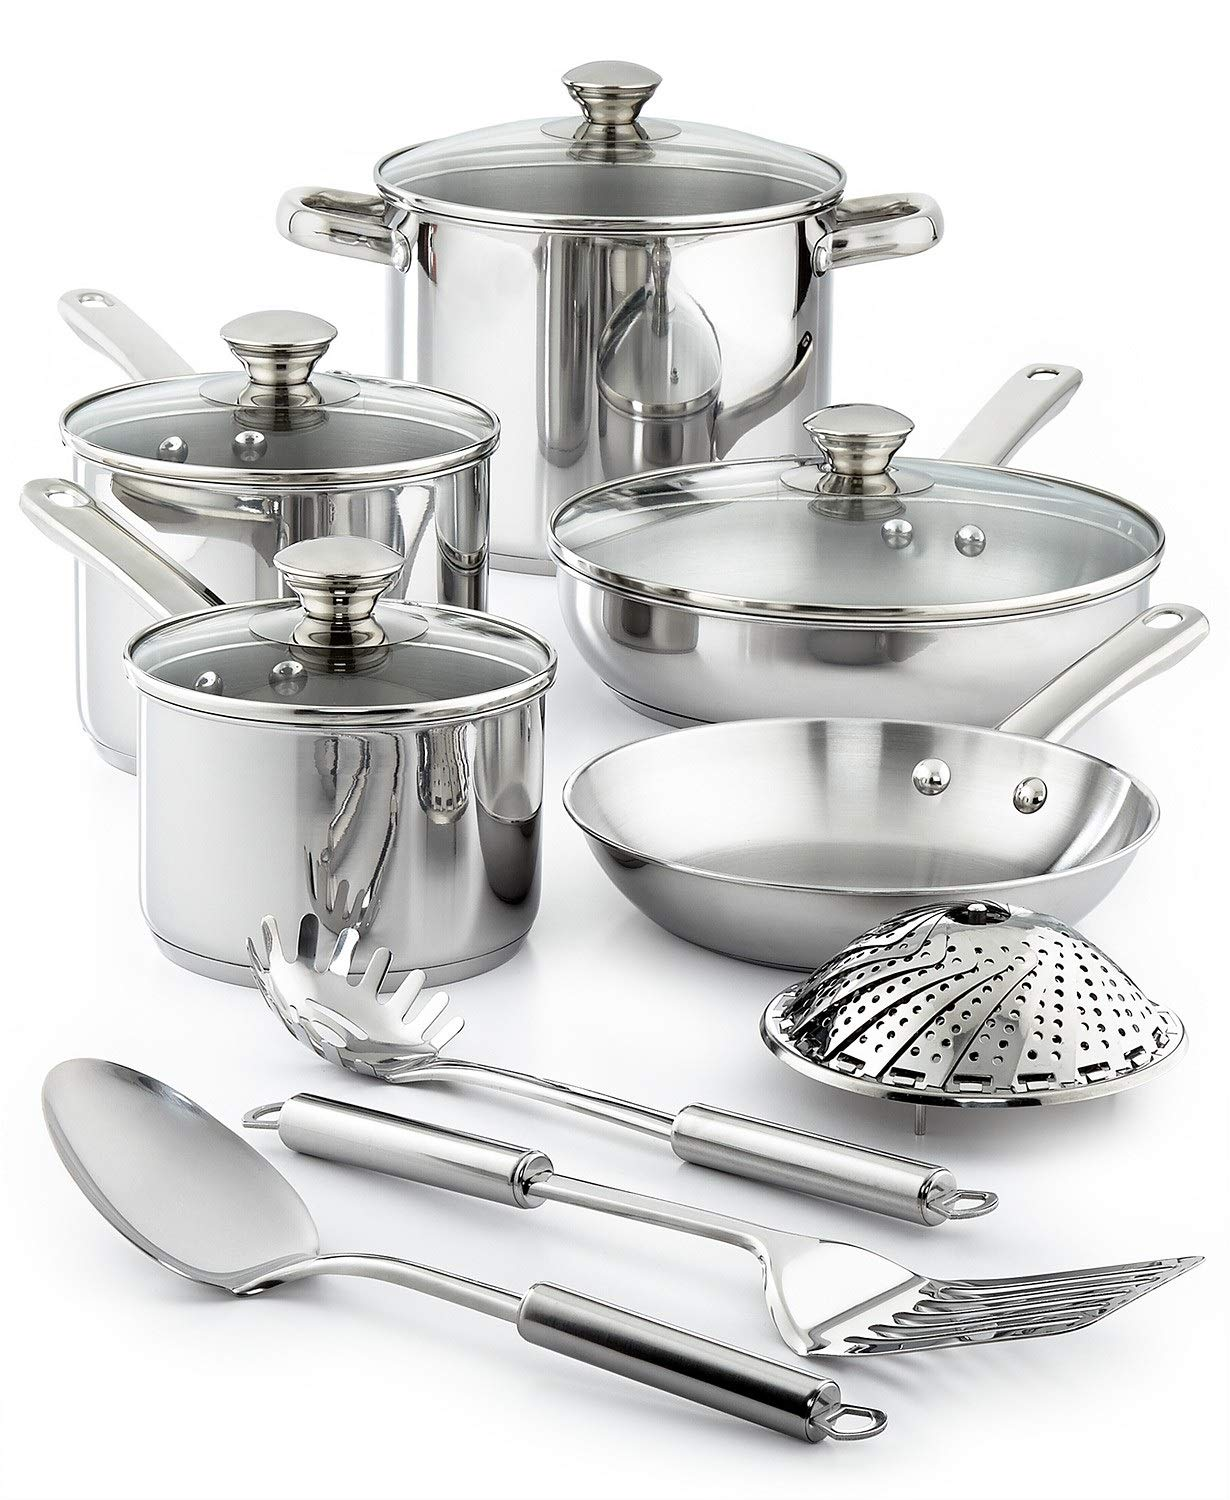 Amazon.com: Tools Of The Trade Stainless Steel 13 Piece: Kitchen & Dining